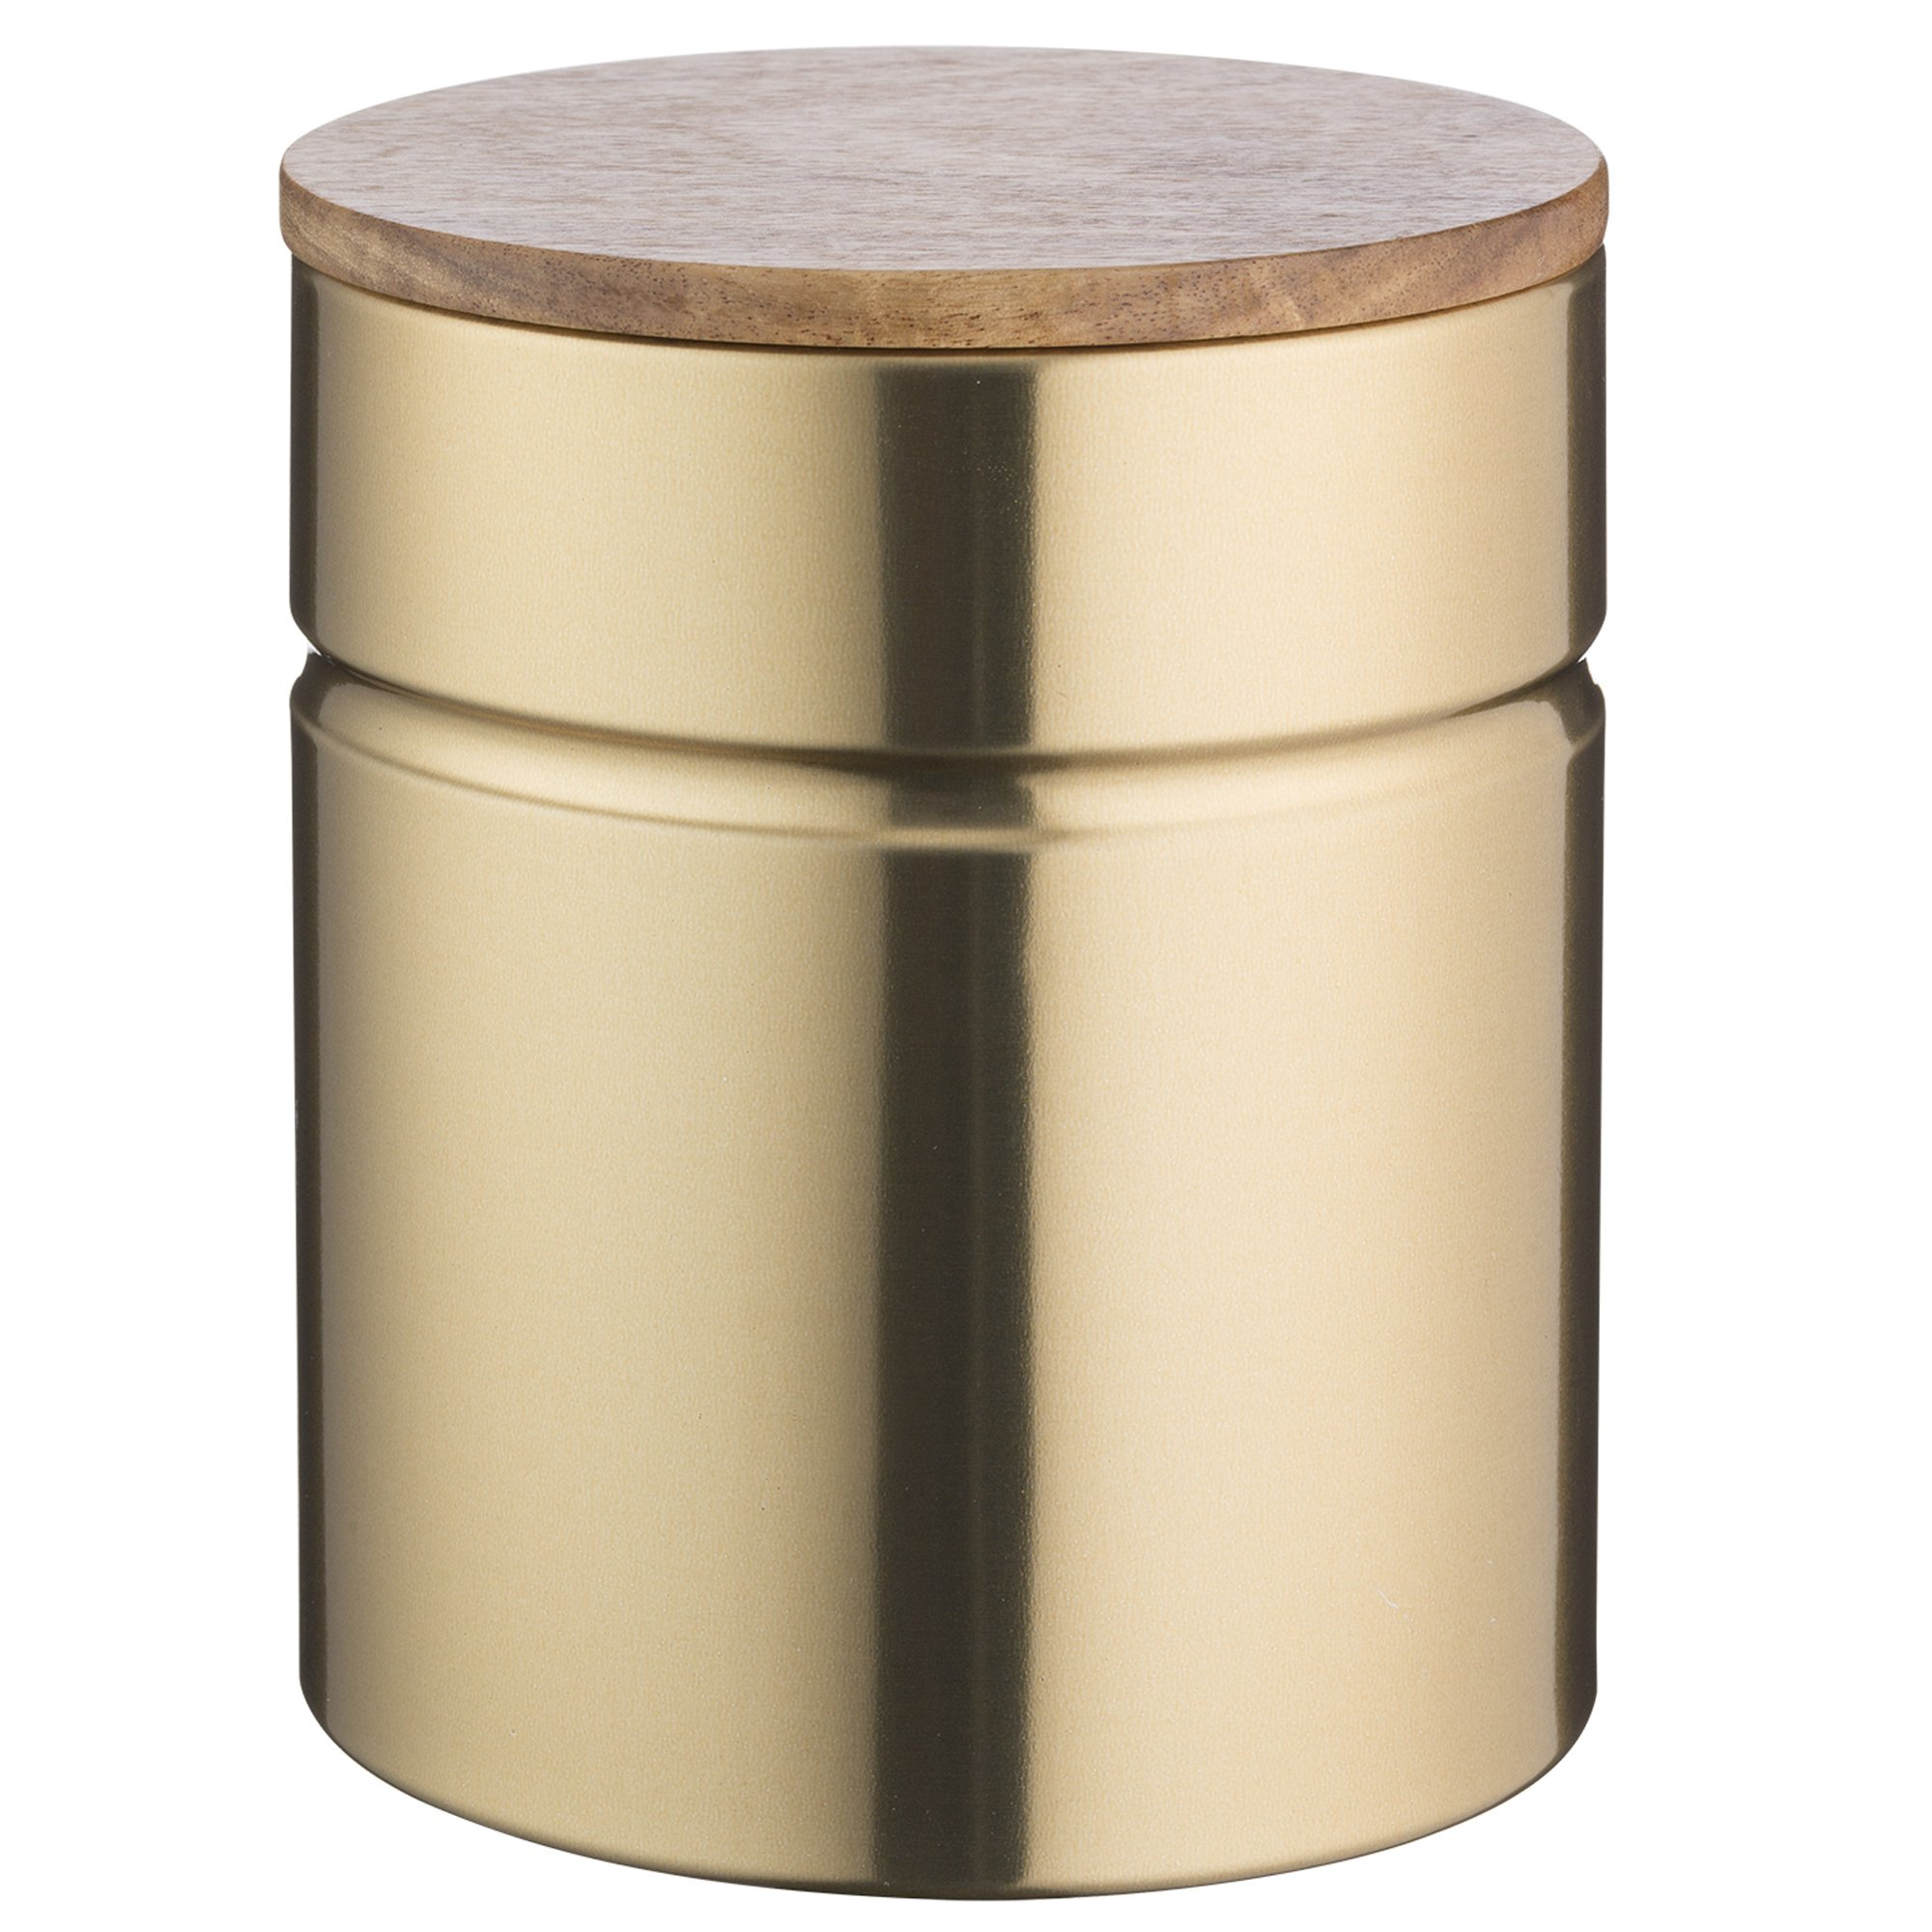 Typhoon Modern Kitchen Medium Storage, 2-1/4 Quart Gold Metallic Canister With Acacia Wood Lid, Airtight Seal Keeps Flour, Cereal and Rice Fresh